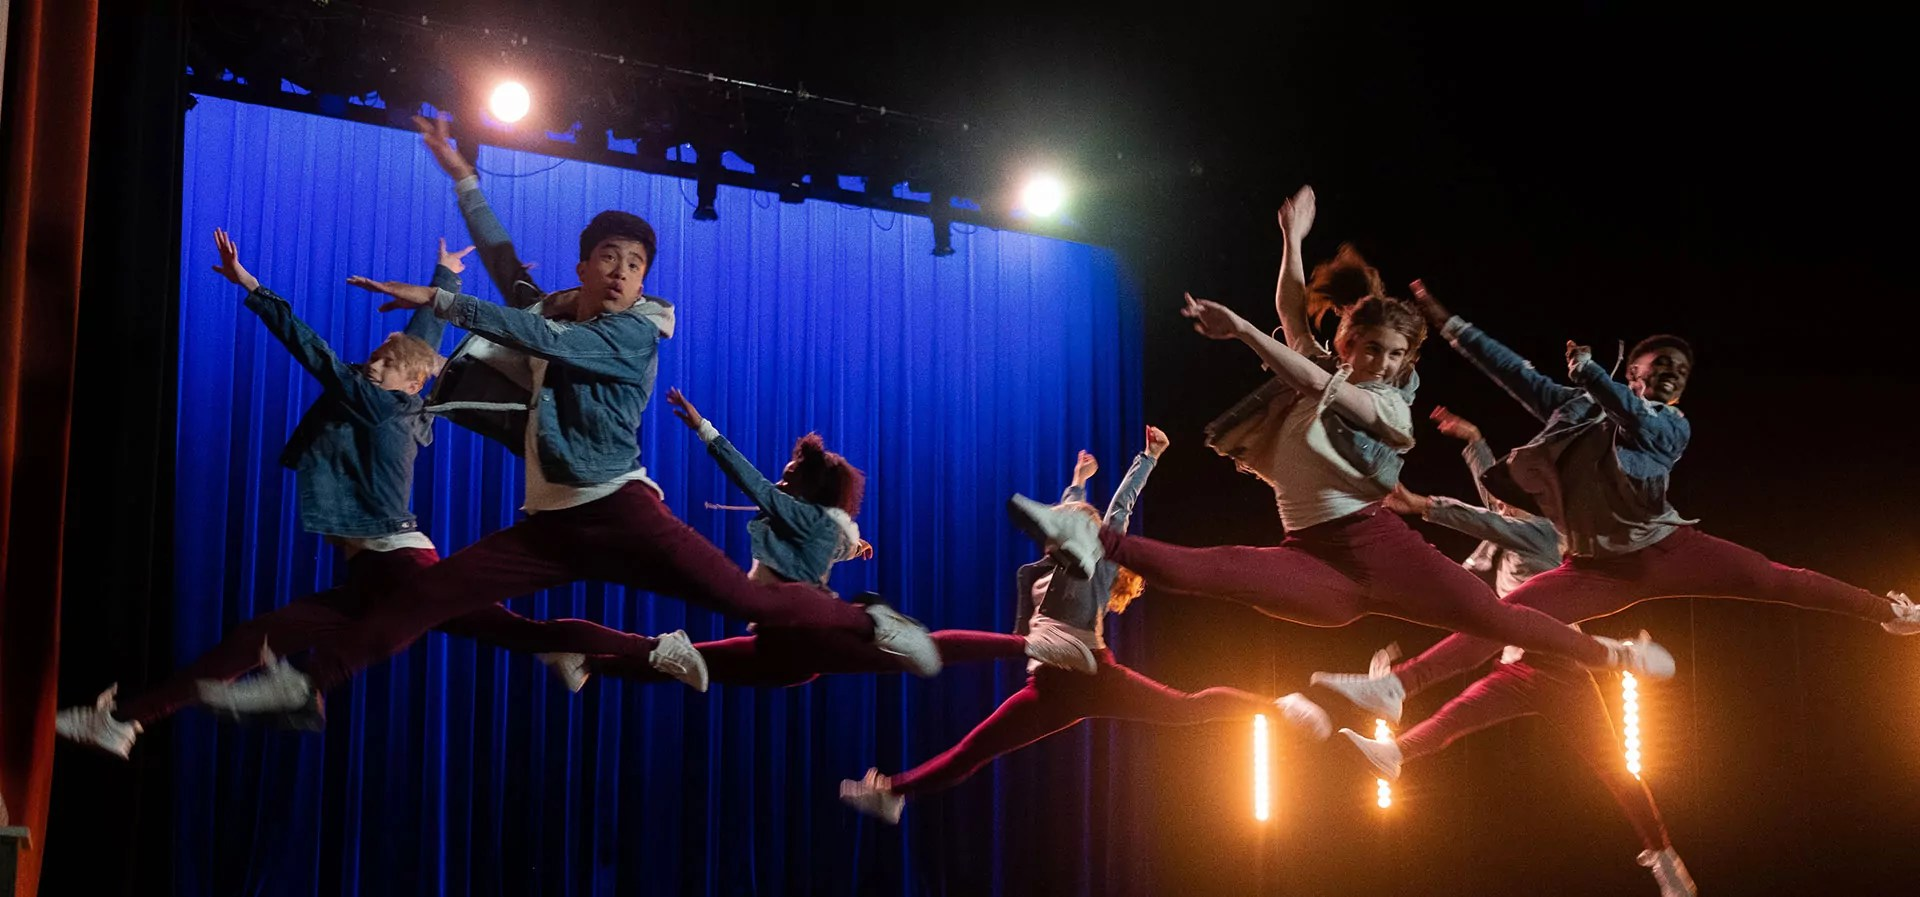 Brand_Image_Still_Dance_Dancers-Leaping-in-Air-DSF7711_JPEG_16MB_crop